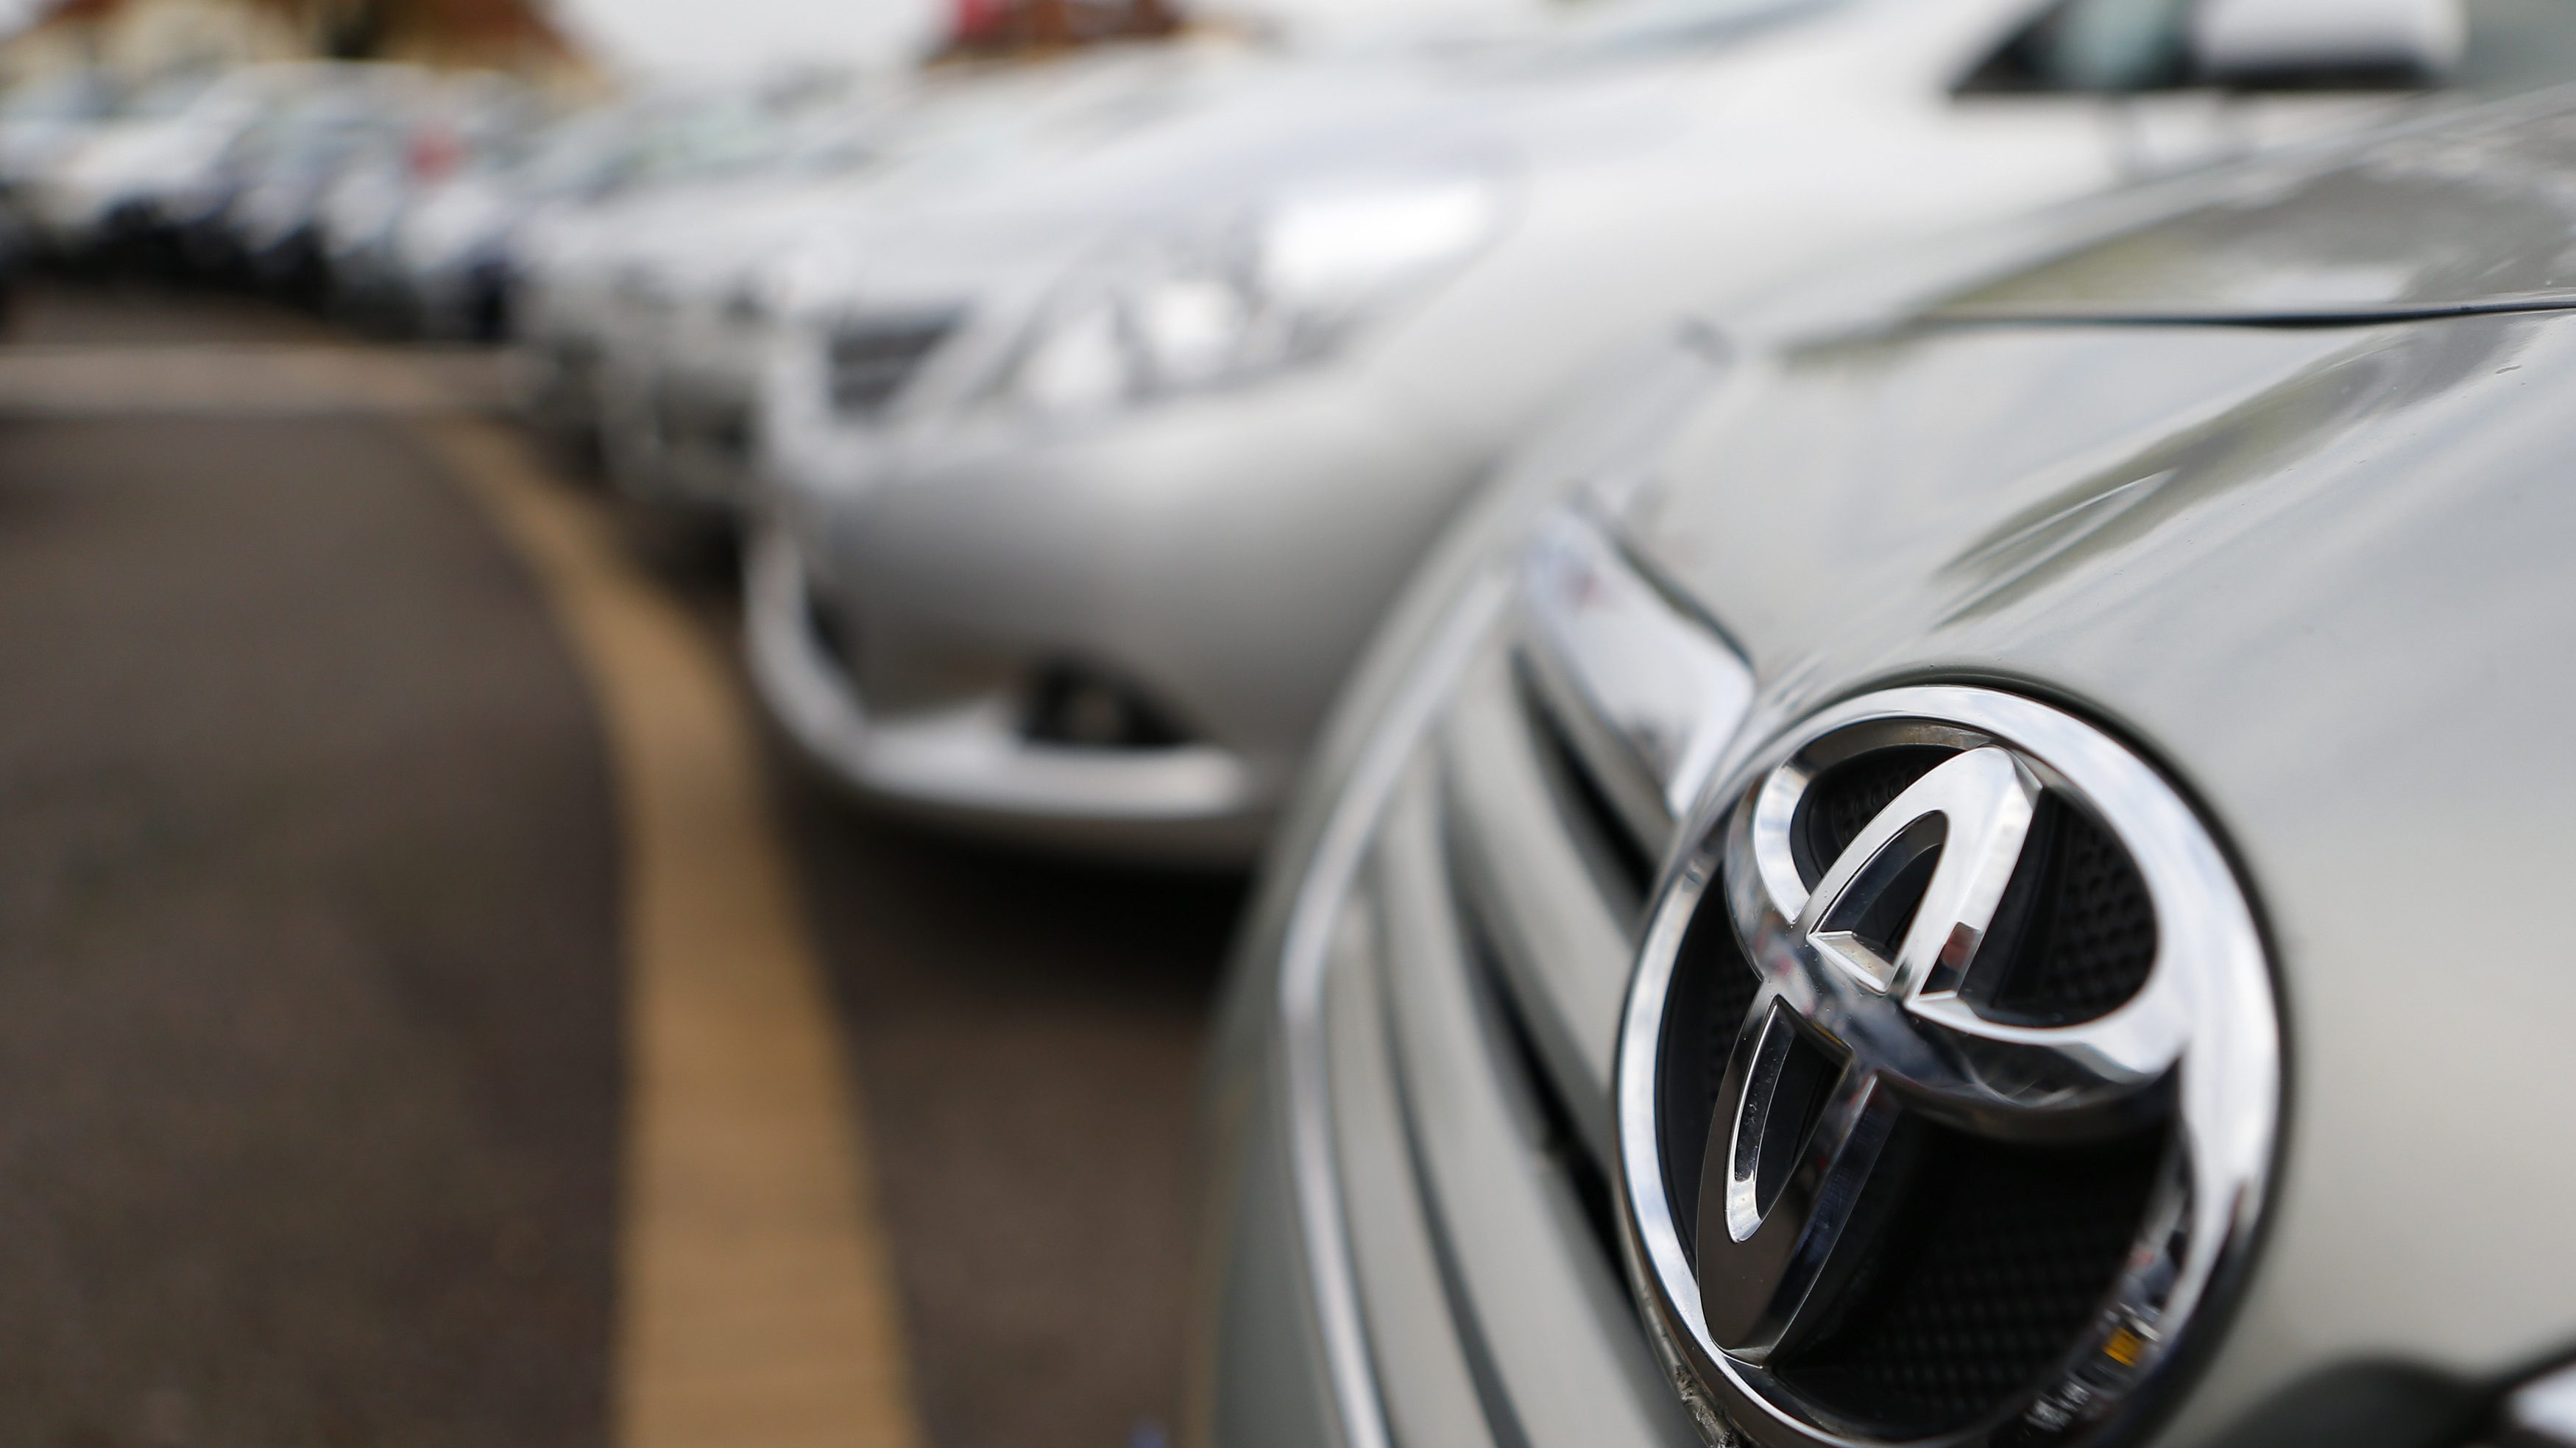 Toyota cars are lined up for sale on the forecourt of a Toyota dealer in Purley, south London, October 10, 2012. Toyota Motor Corp said it would recall more than 7.4 million vehicles worldwide as a faulty power window switch was a potential fire hazard, the latest in a series of setbacks that have dented the reputation of Japan's biggest automaker.  REUTERS/Andrew Winning (BRITAIN - Tags: TRANSPORT BUSINESS) - RTR38ZR0